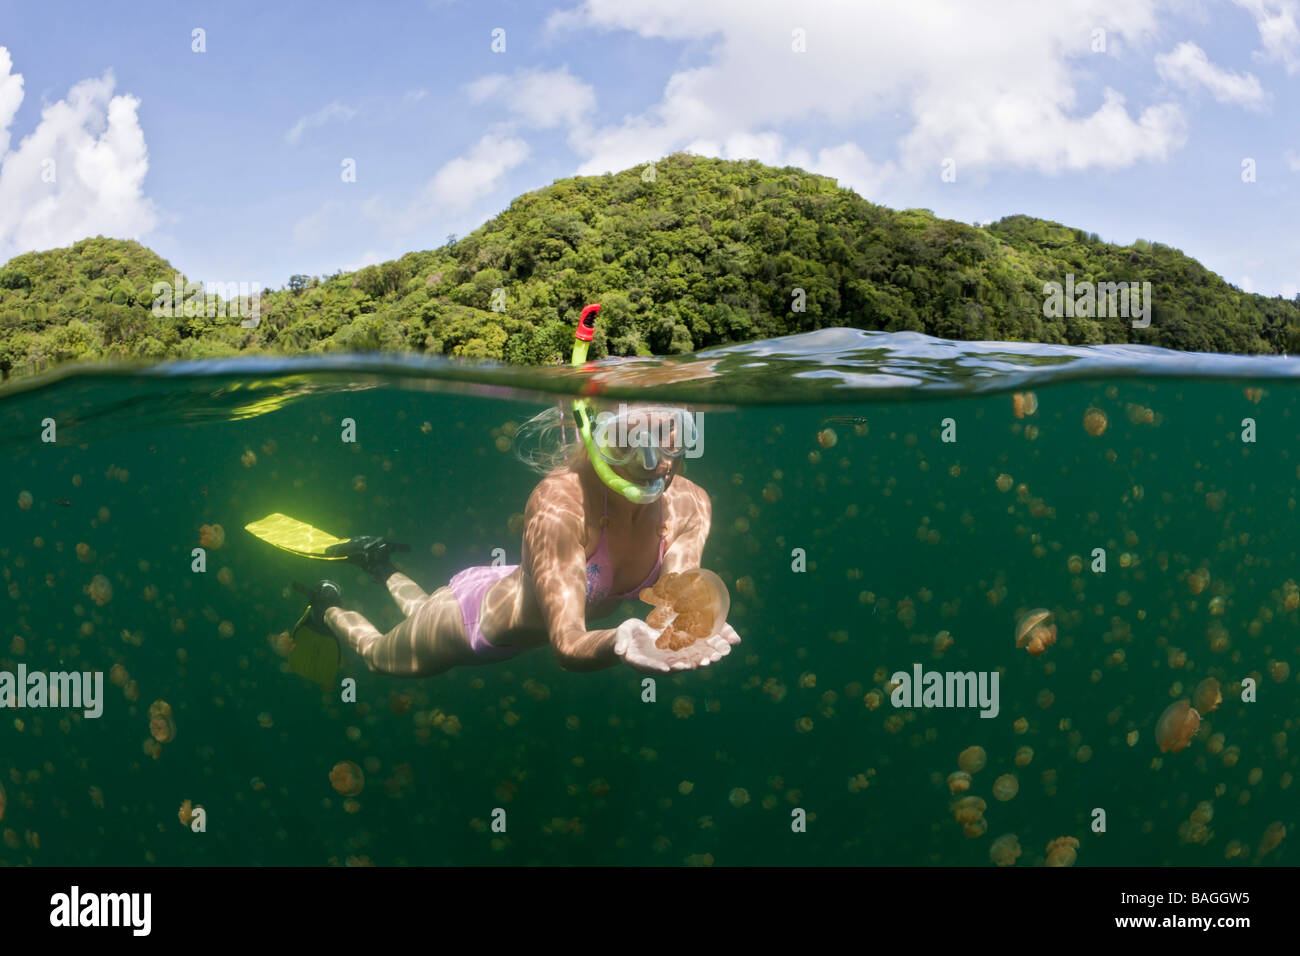 Skin Diving with harmless Jellyfish Mastigias papua etpisonii Jellyfish Lake Micronesia Palau - Stock Image